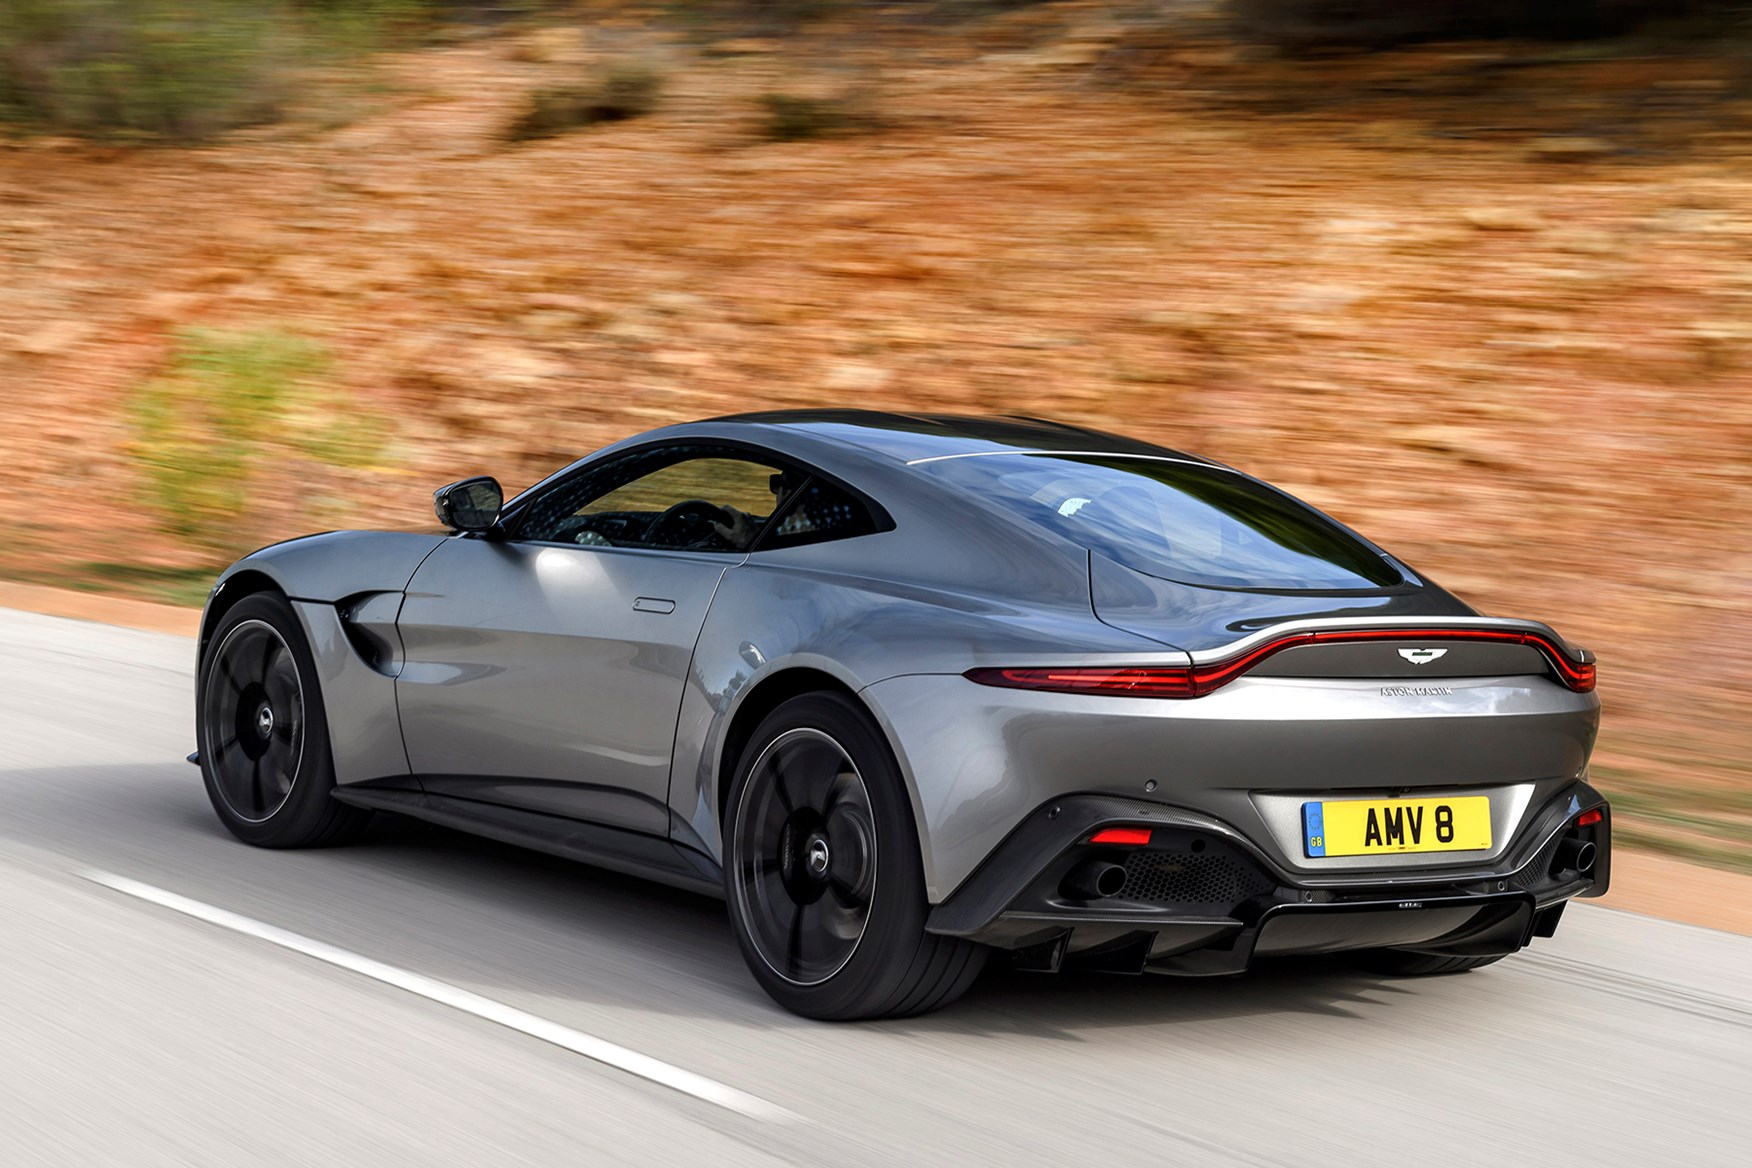 Aston Martin Vantage 2021 Mpg Running Costs Economy Co2 Parkers